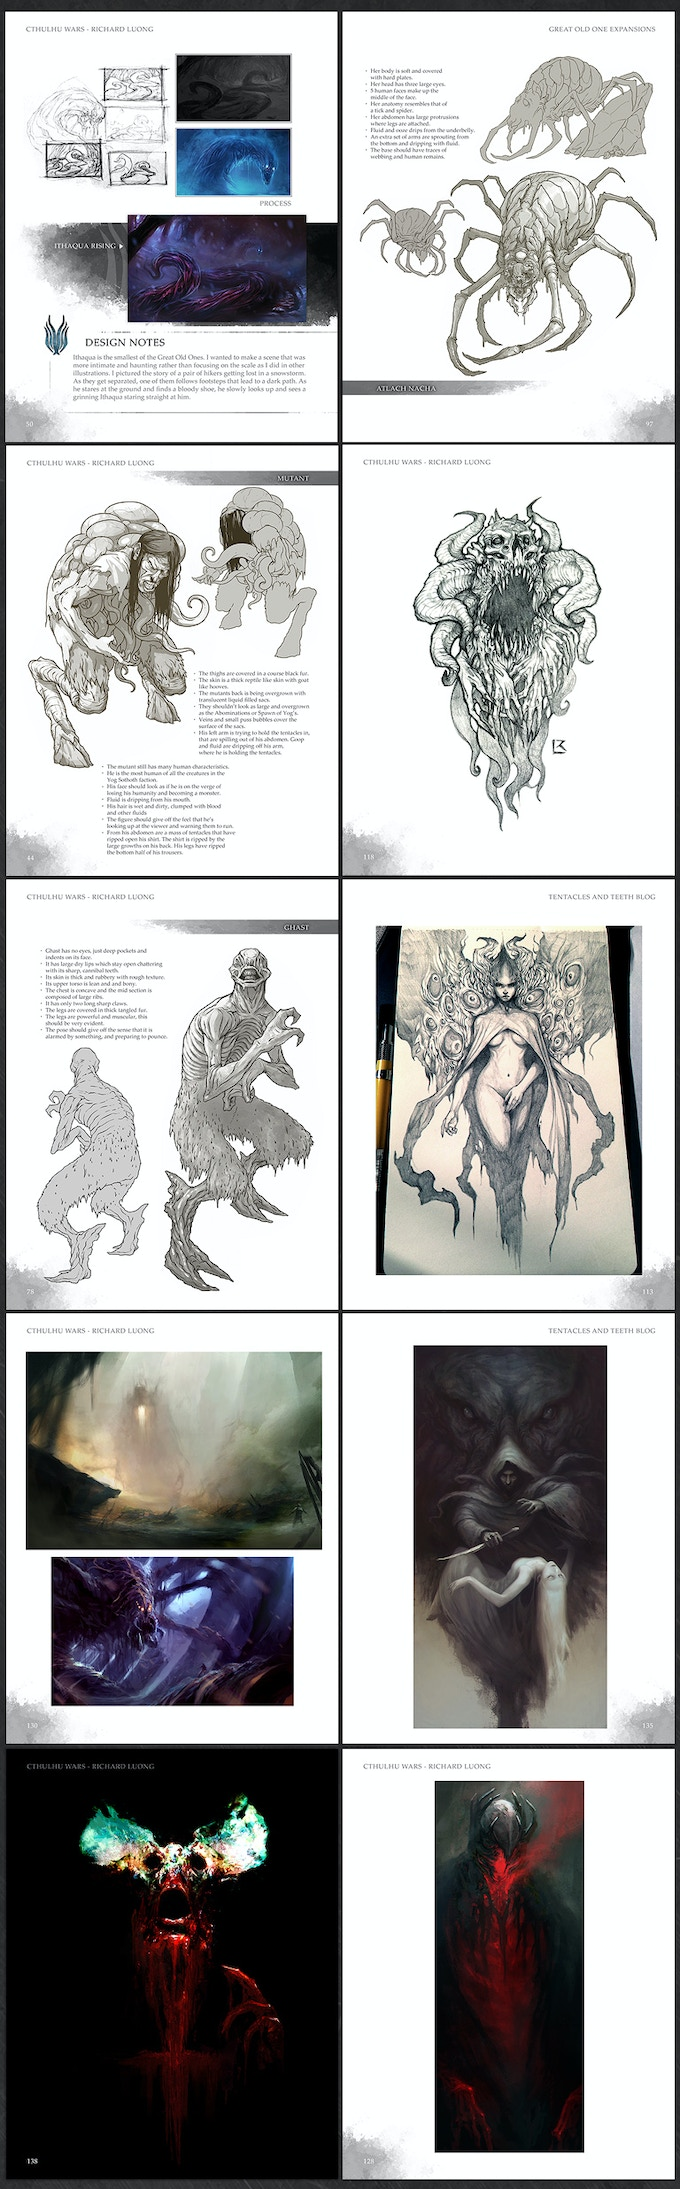 Preview of the pages in the art book.